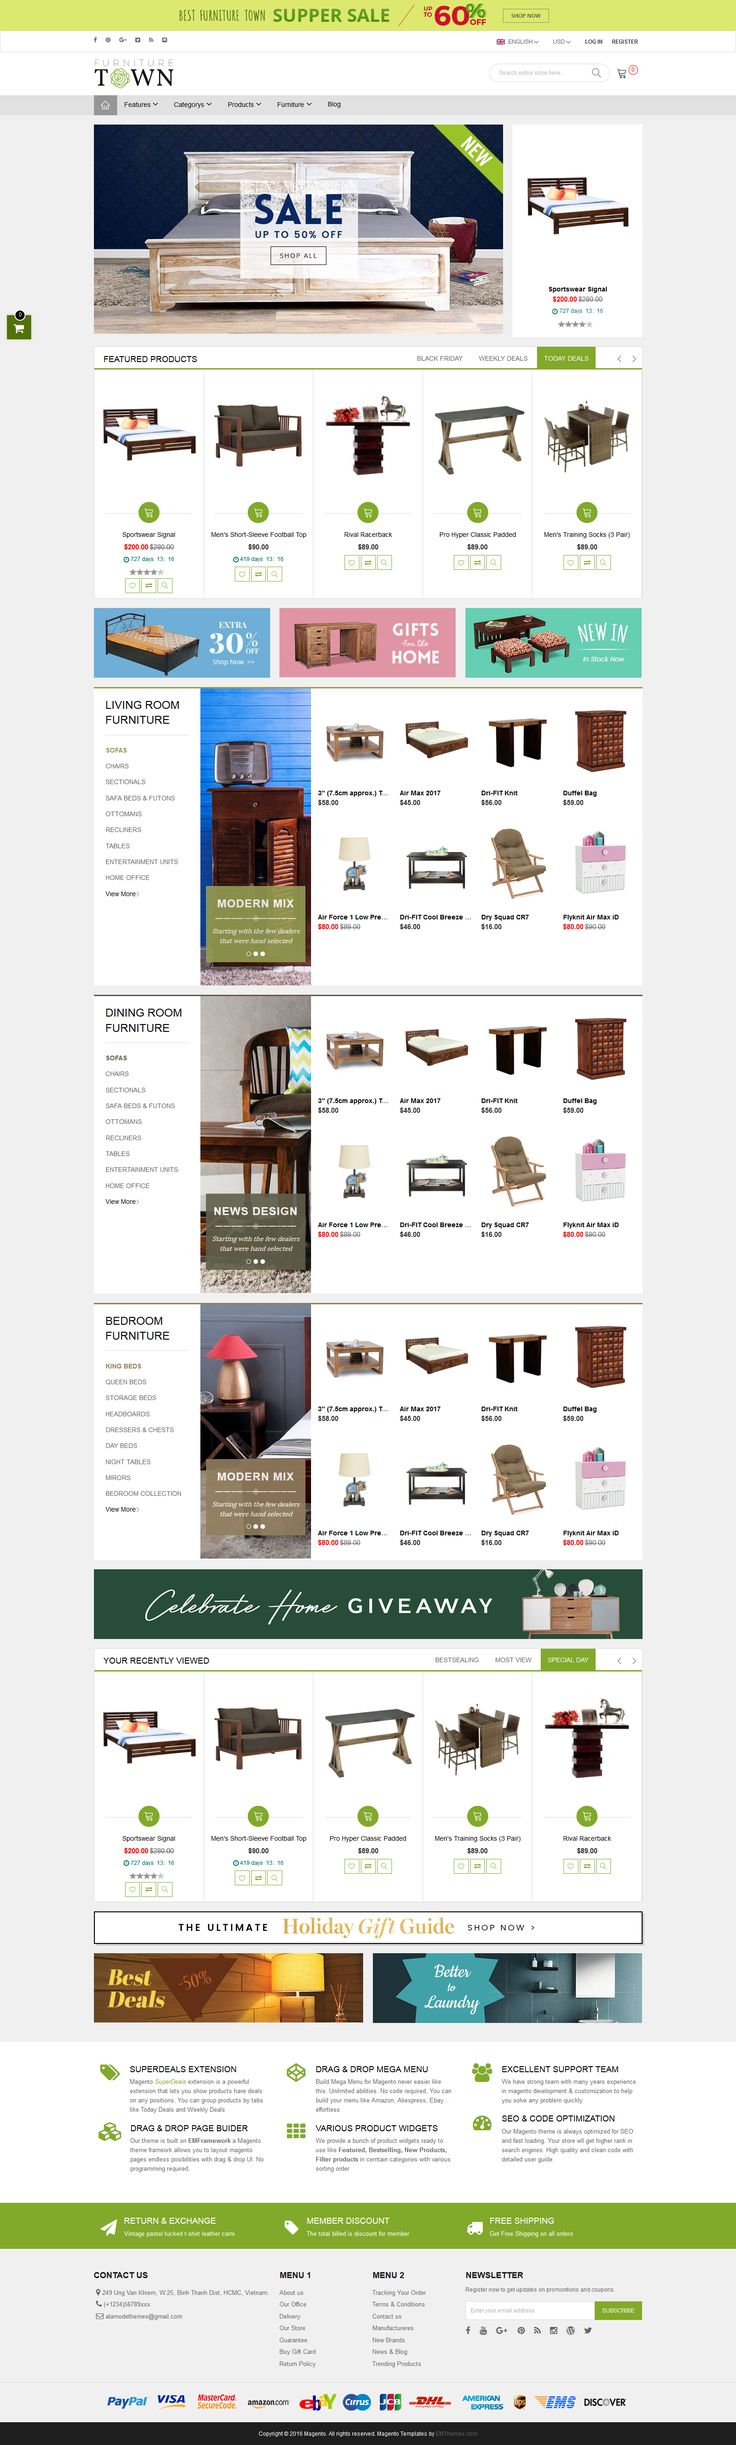 Furniture Store Magento 2 Theme & Magento 1.9 Theme - Homepage